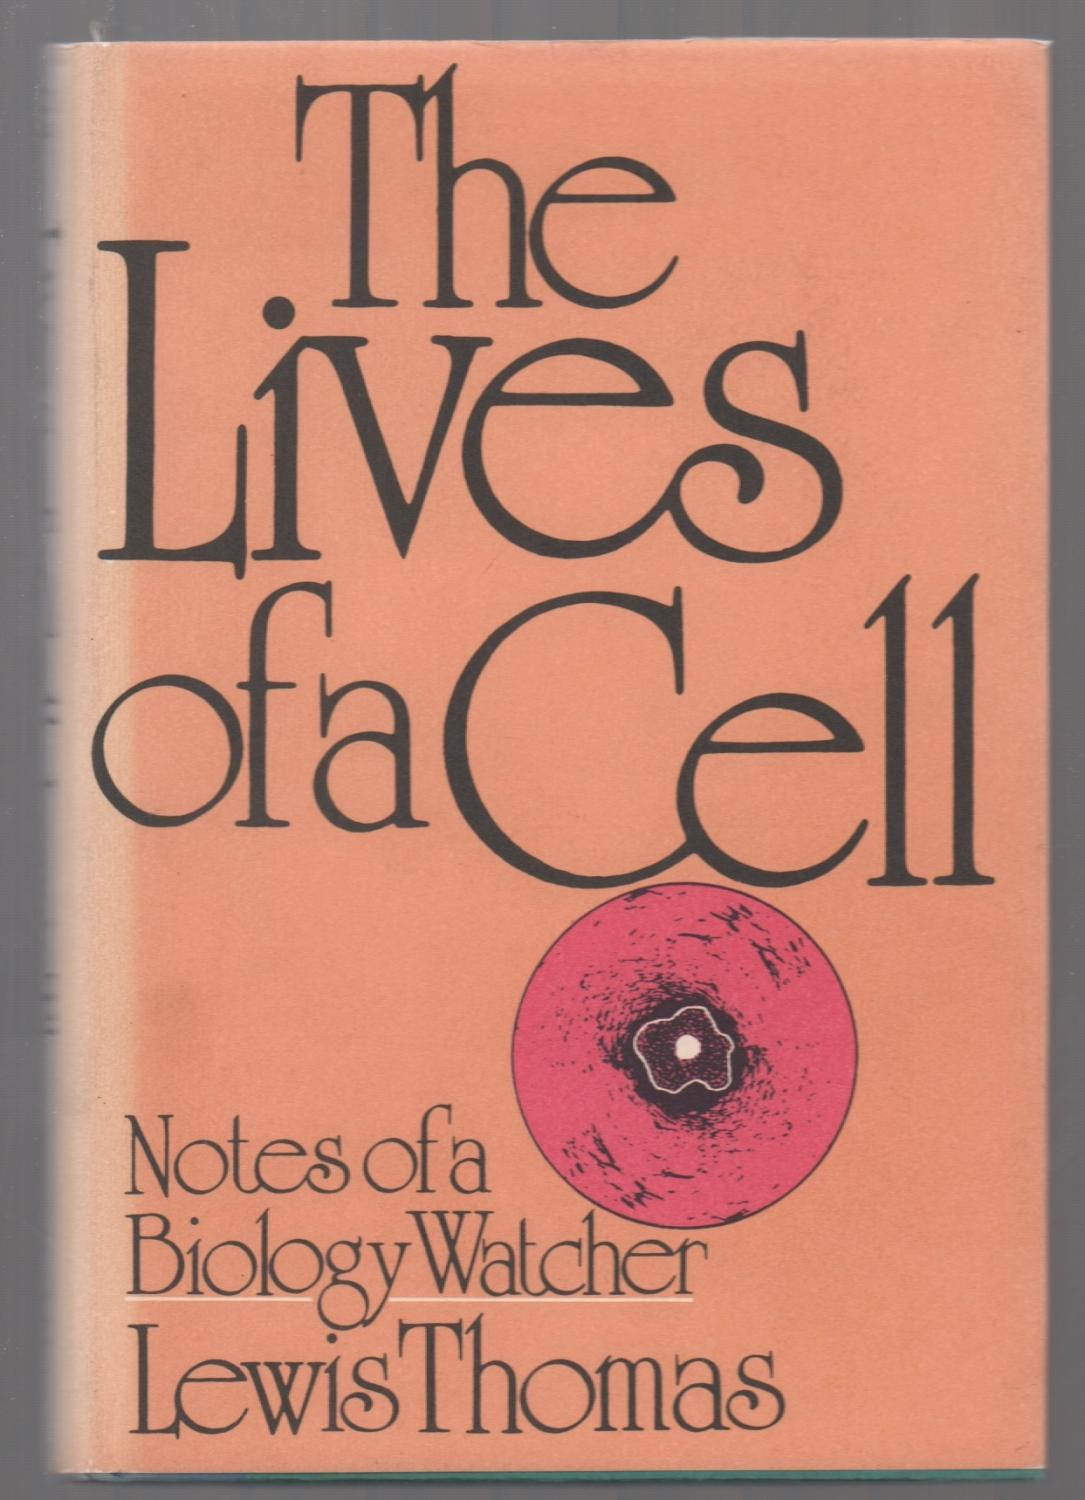 cover of The Lives of a Cell by Lewis Thomas